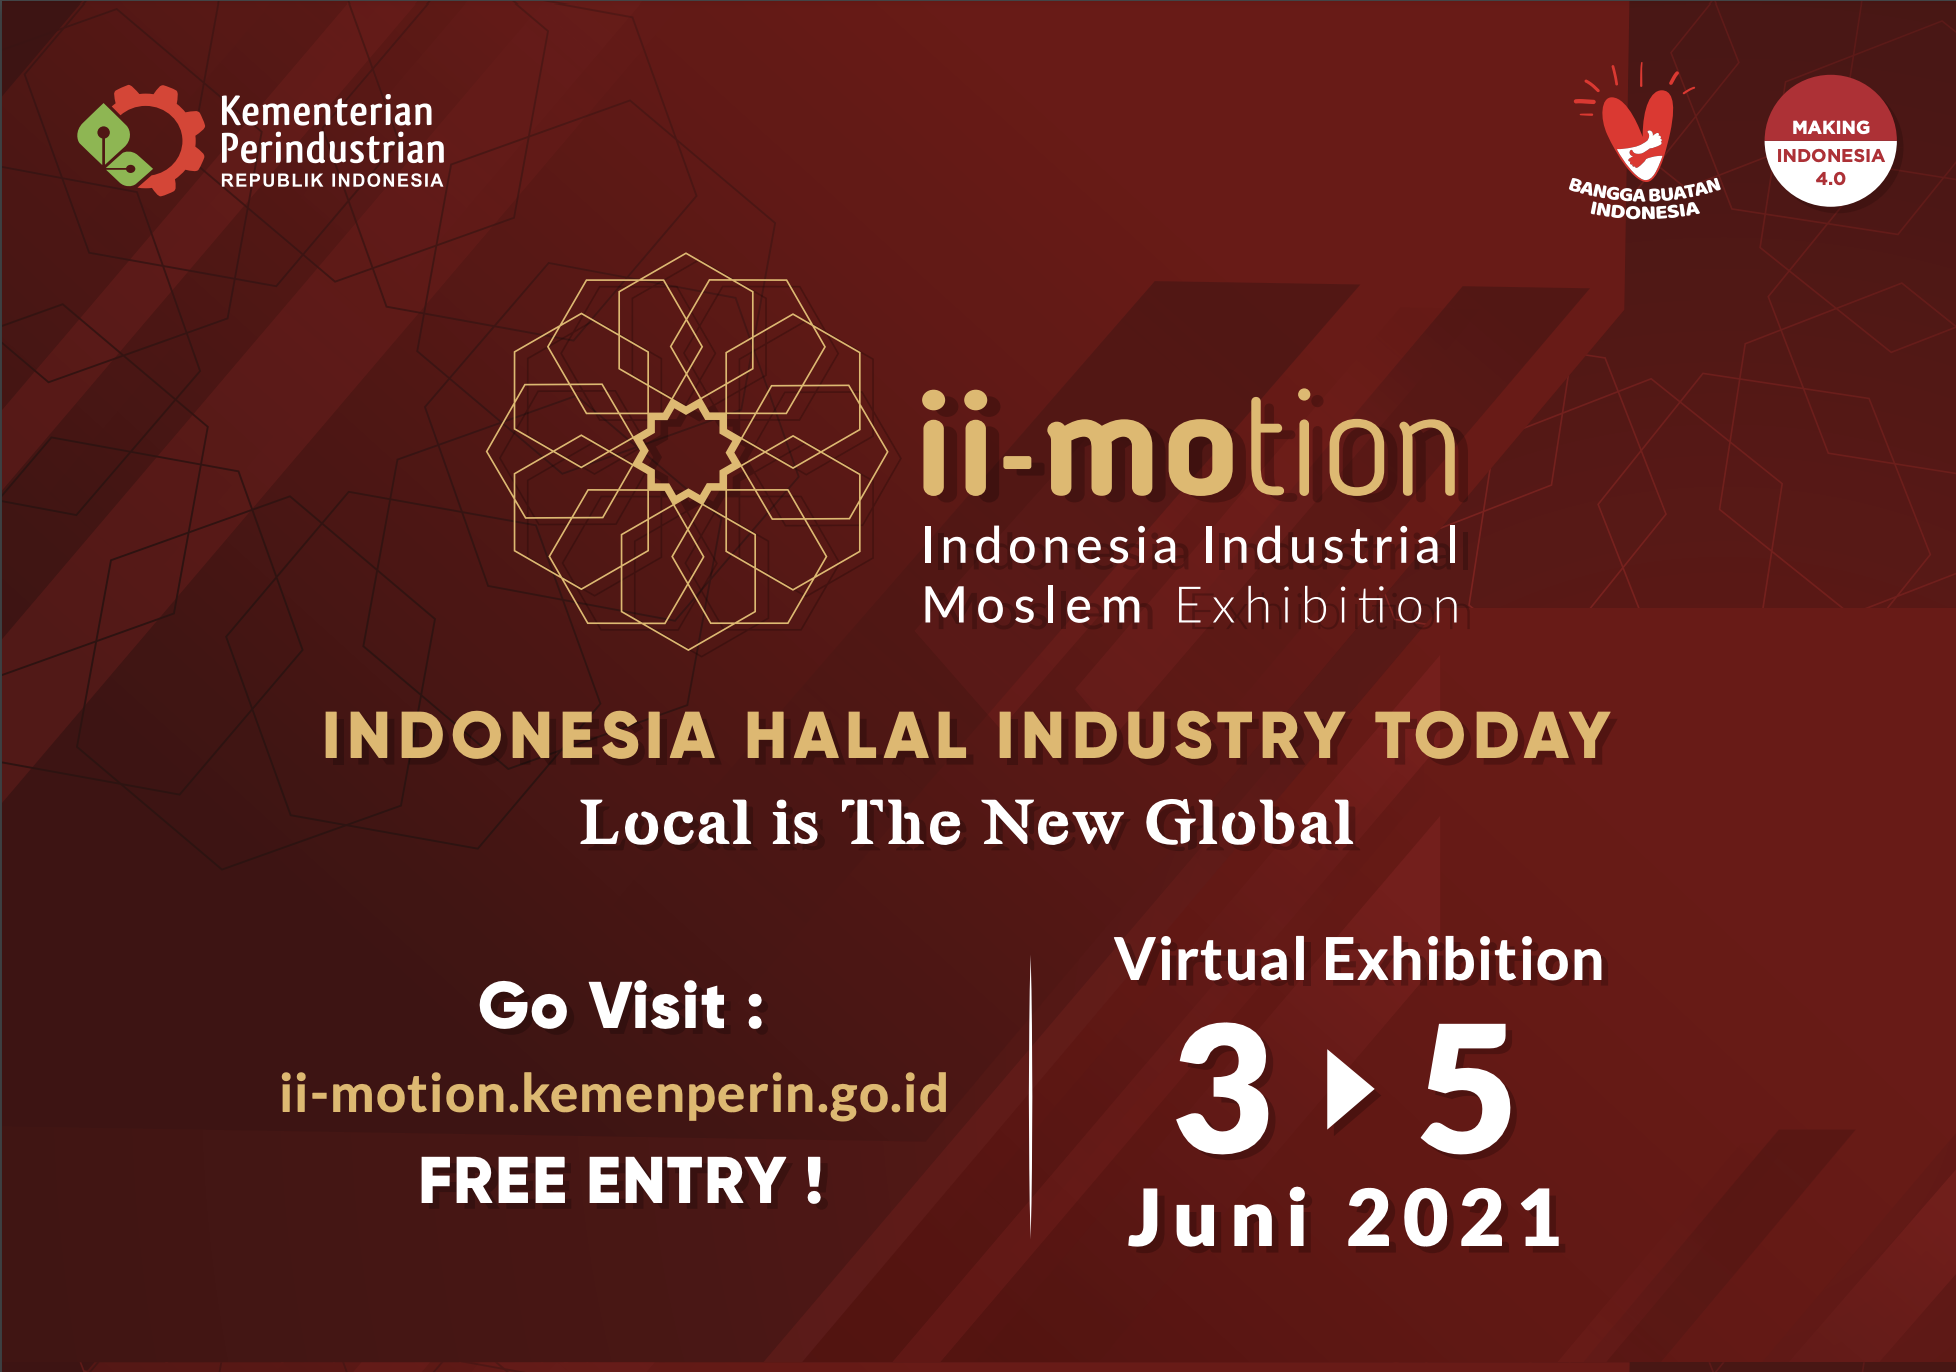 Indonesia Industrial Moslem Exhibition